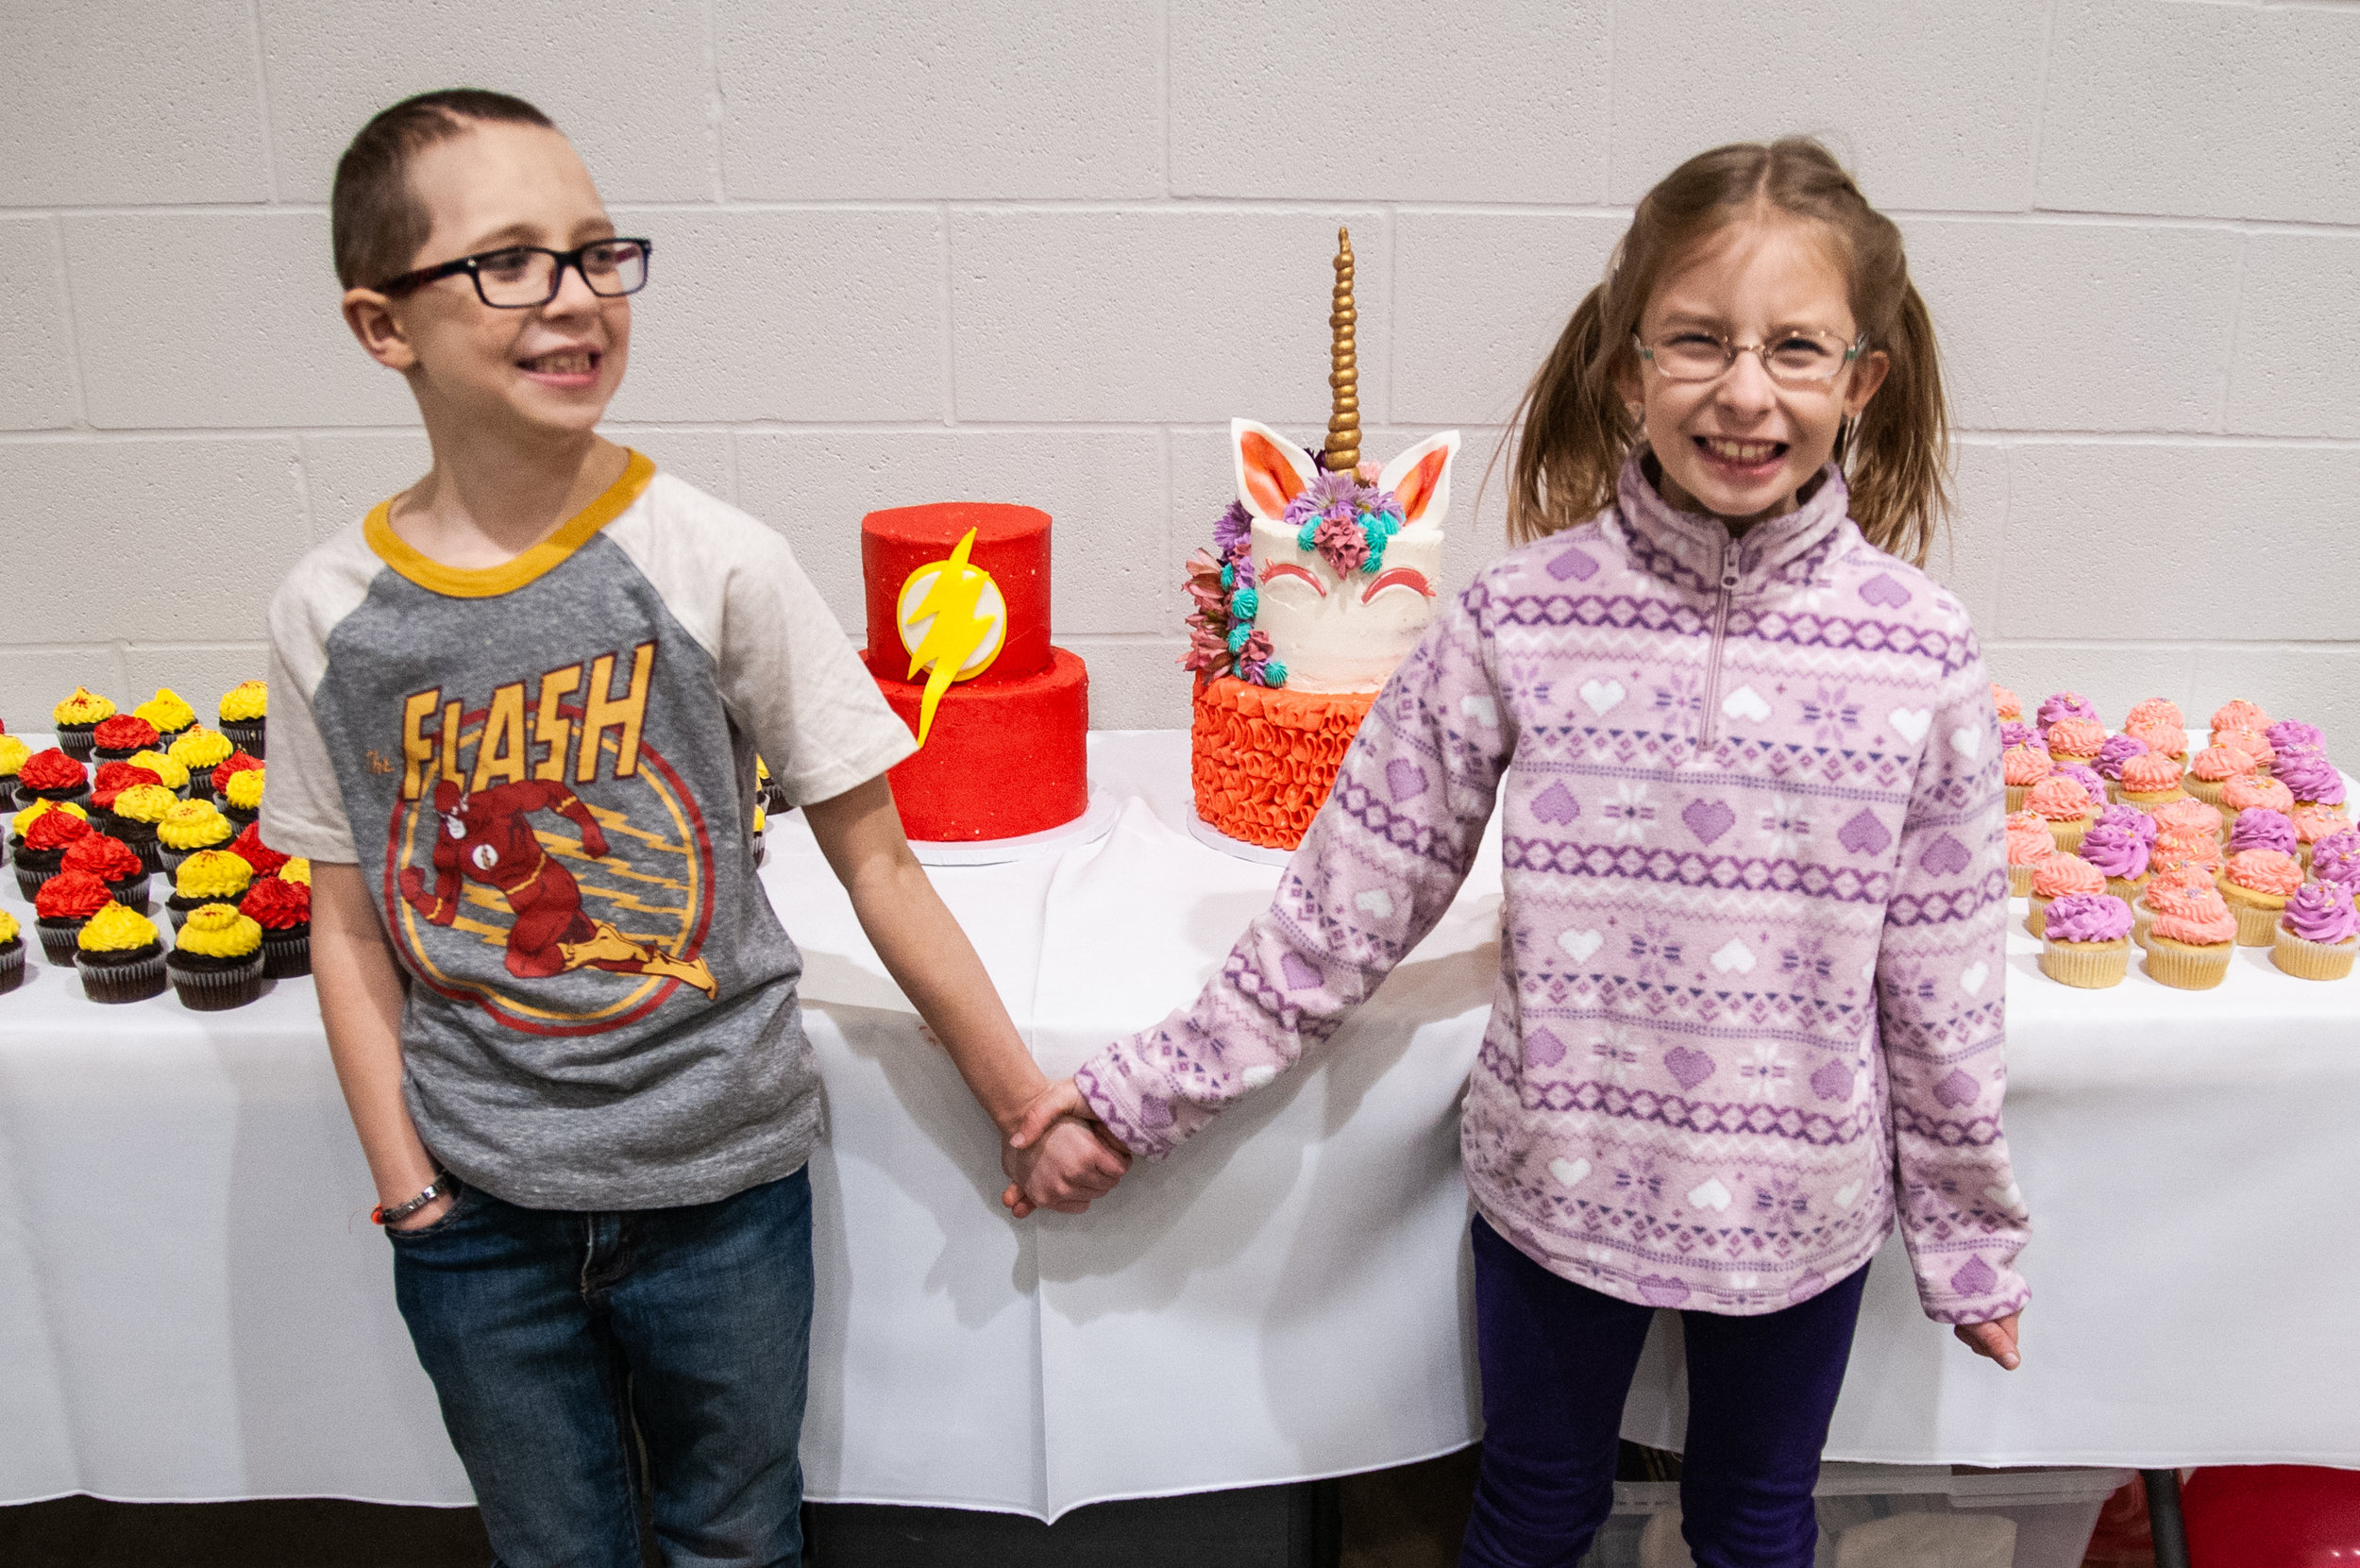 Christian and his twin sister, Grace, hold hands before cutting their cakes at the 8th Birthday Bash in Muncie, Ind. All decorations, food, activities and games were donated by community members to help celebrate the twins' birthday.  | PHOTO BY   MADELINE GROSH